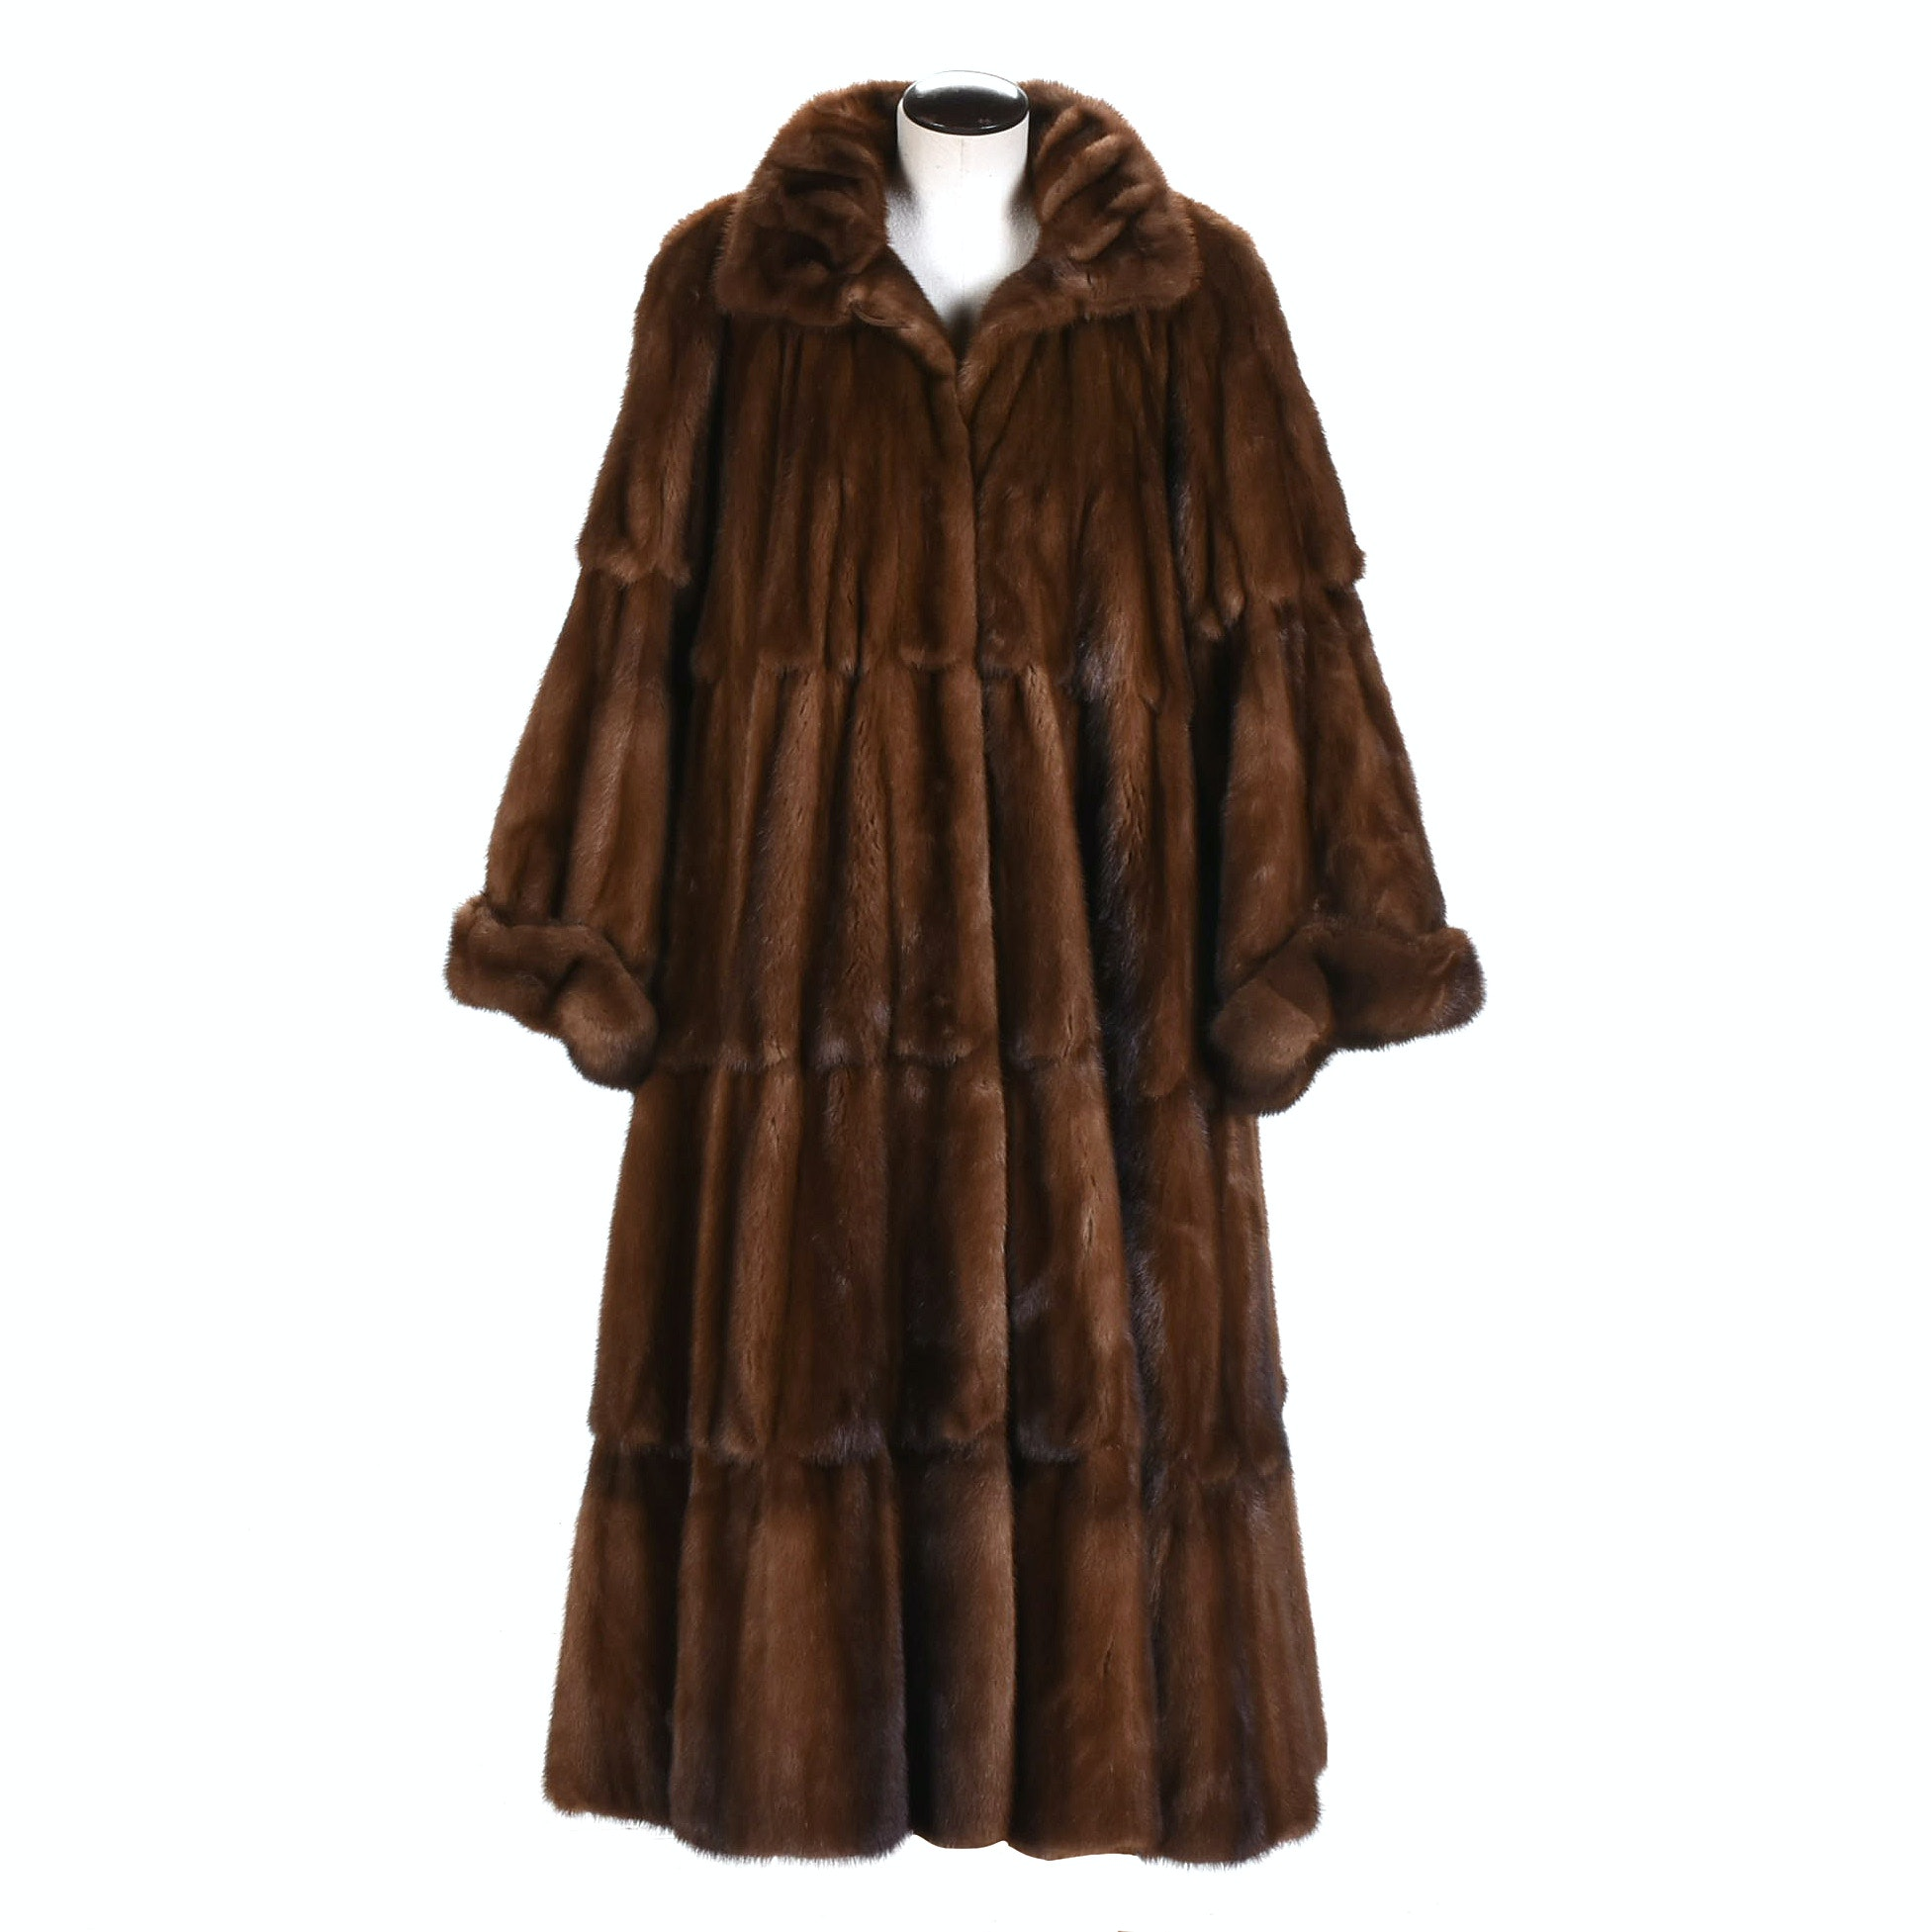 Fendi Mink Pelt Coat from the Carol and Irwin Ware Collection at I. Magnin